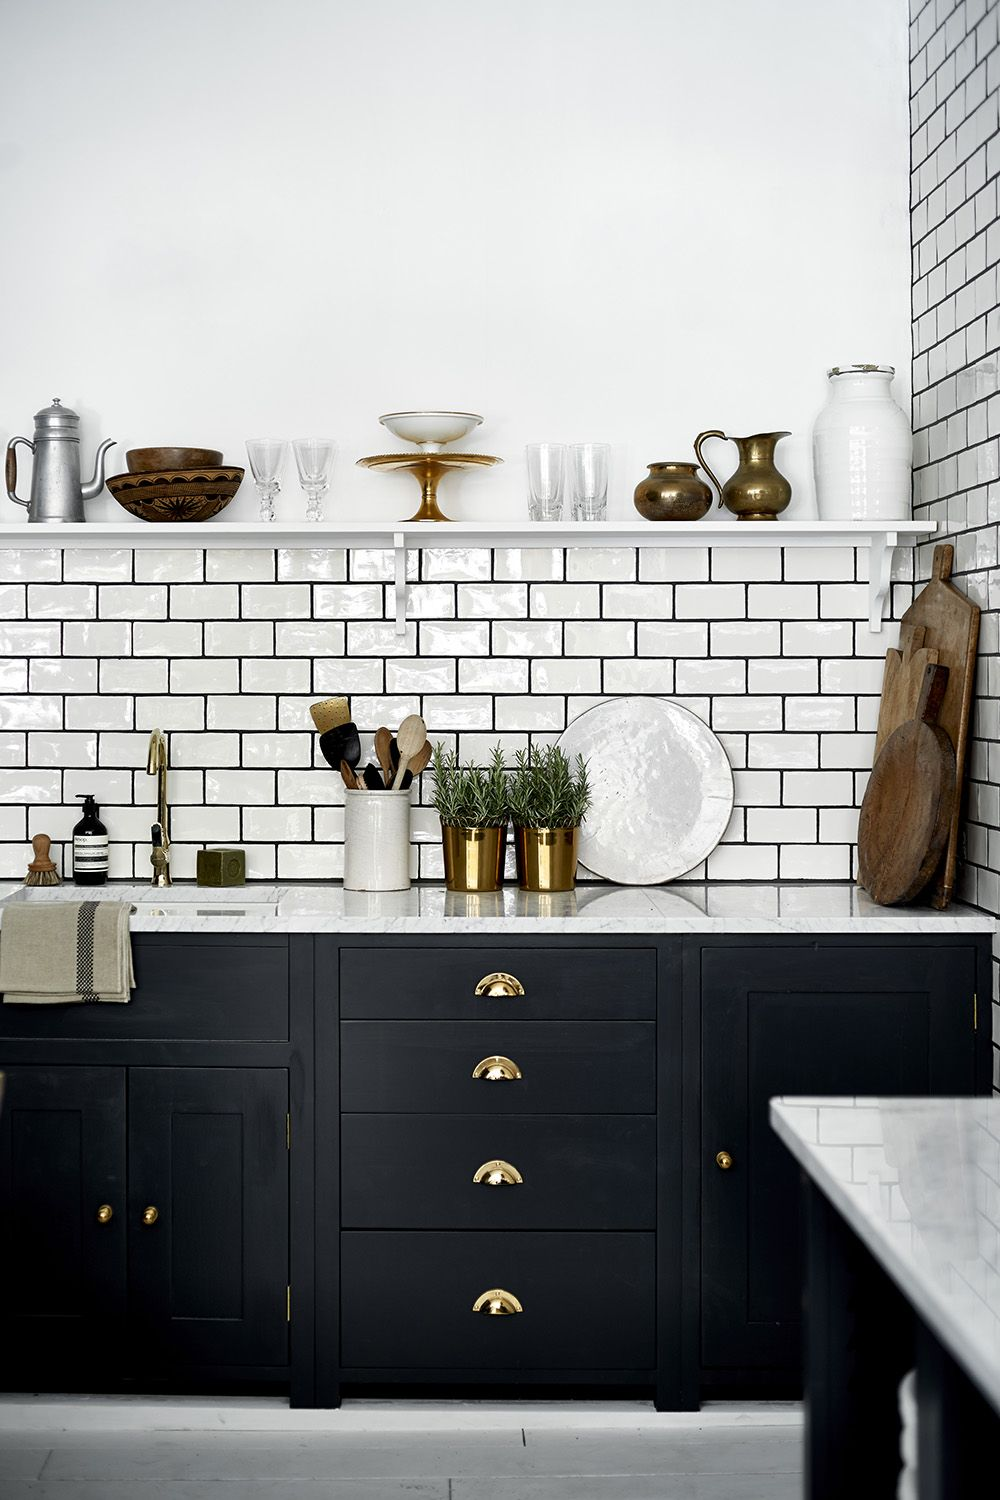 Spritzwand Für Küchen Our Suffolk Kitchen Painted In Charcoal With Brass Handles